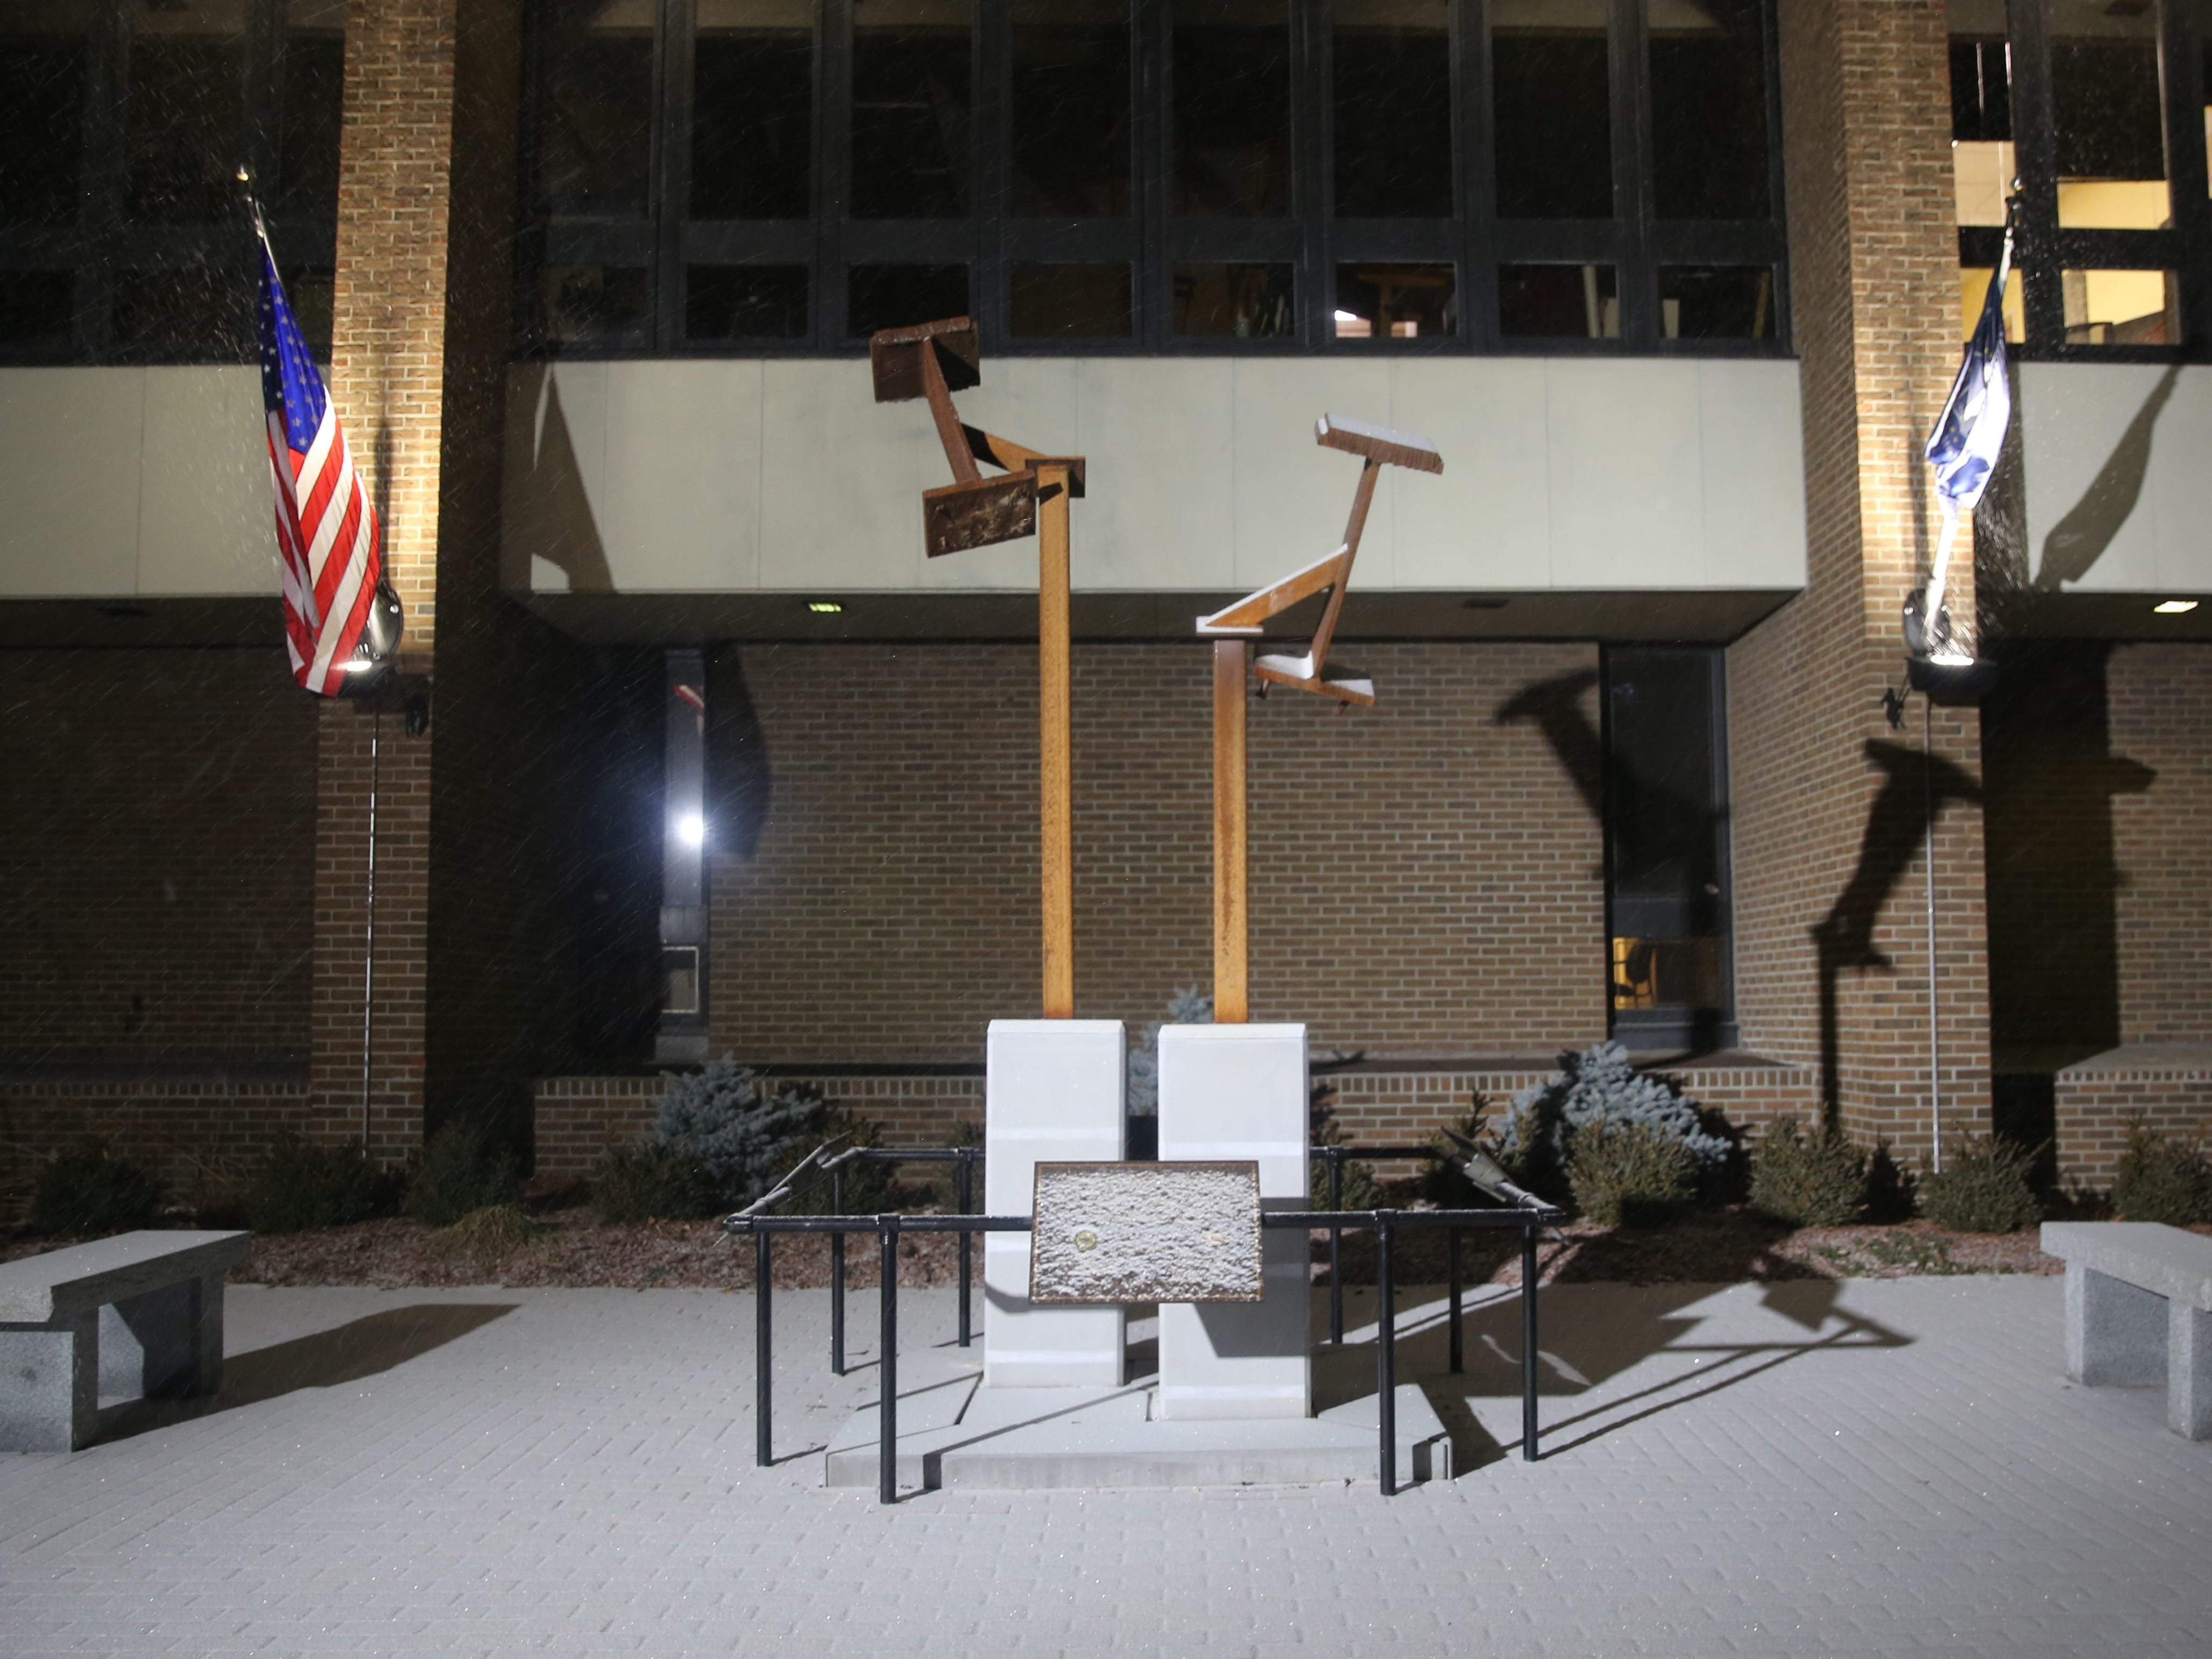 Snow falls and covers part of the ground in front of Poughkeepsie City Hall on Saturday at around 6:30 p.m. The snow is predicted to be heaviest between 8 and 10 p.m., according to the National Weather Service in Albany.